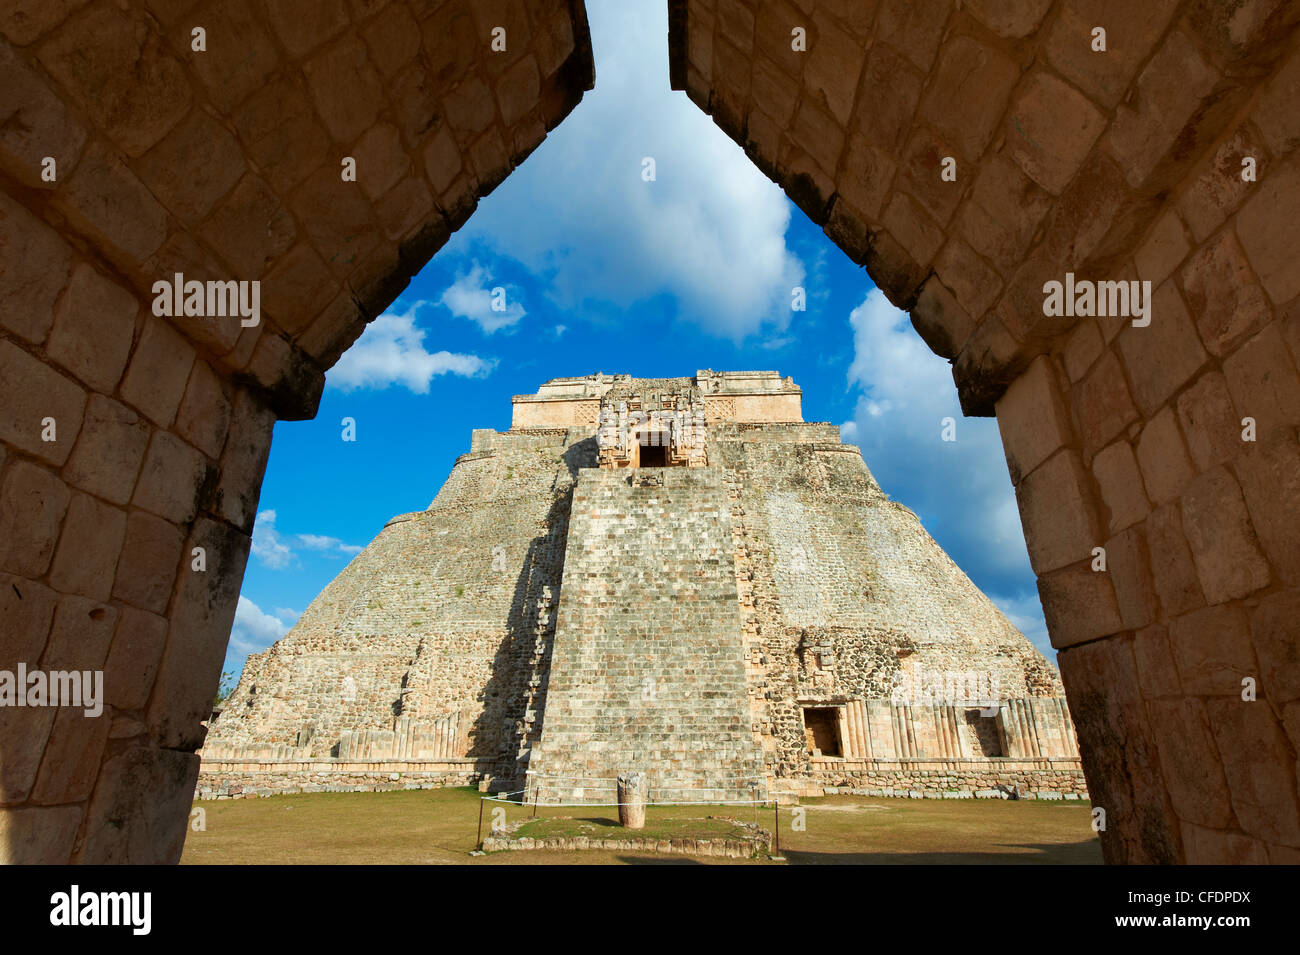 Pyramid of the Magician, Mayan archaeological site, Uxmal, UNESCO World Heritage Site, Yucatan State, Mexico, - Stock Image